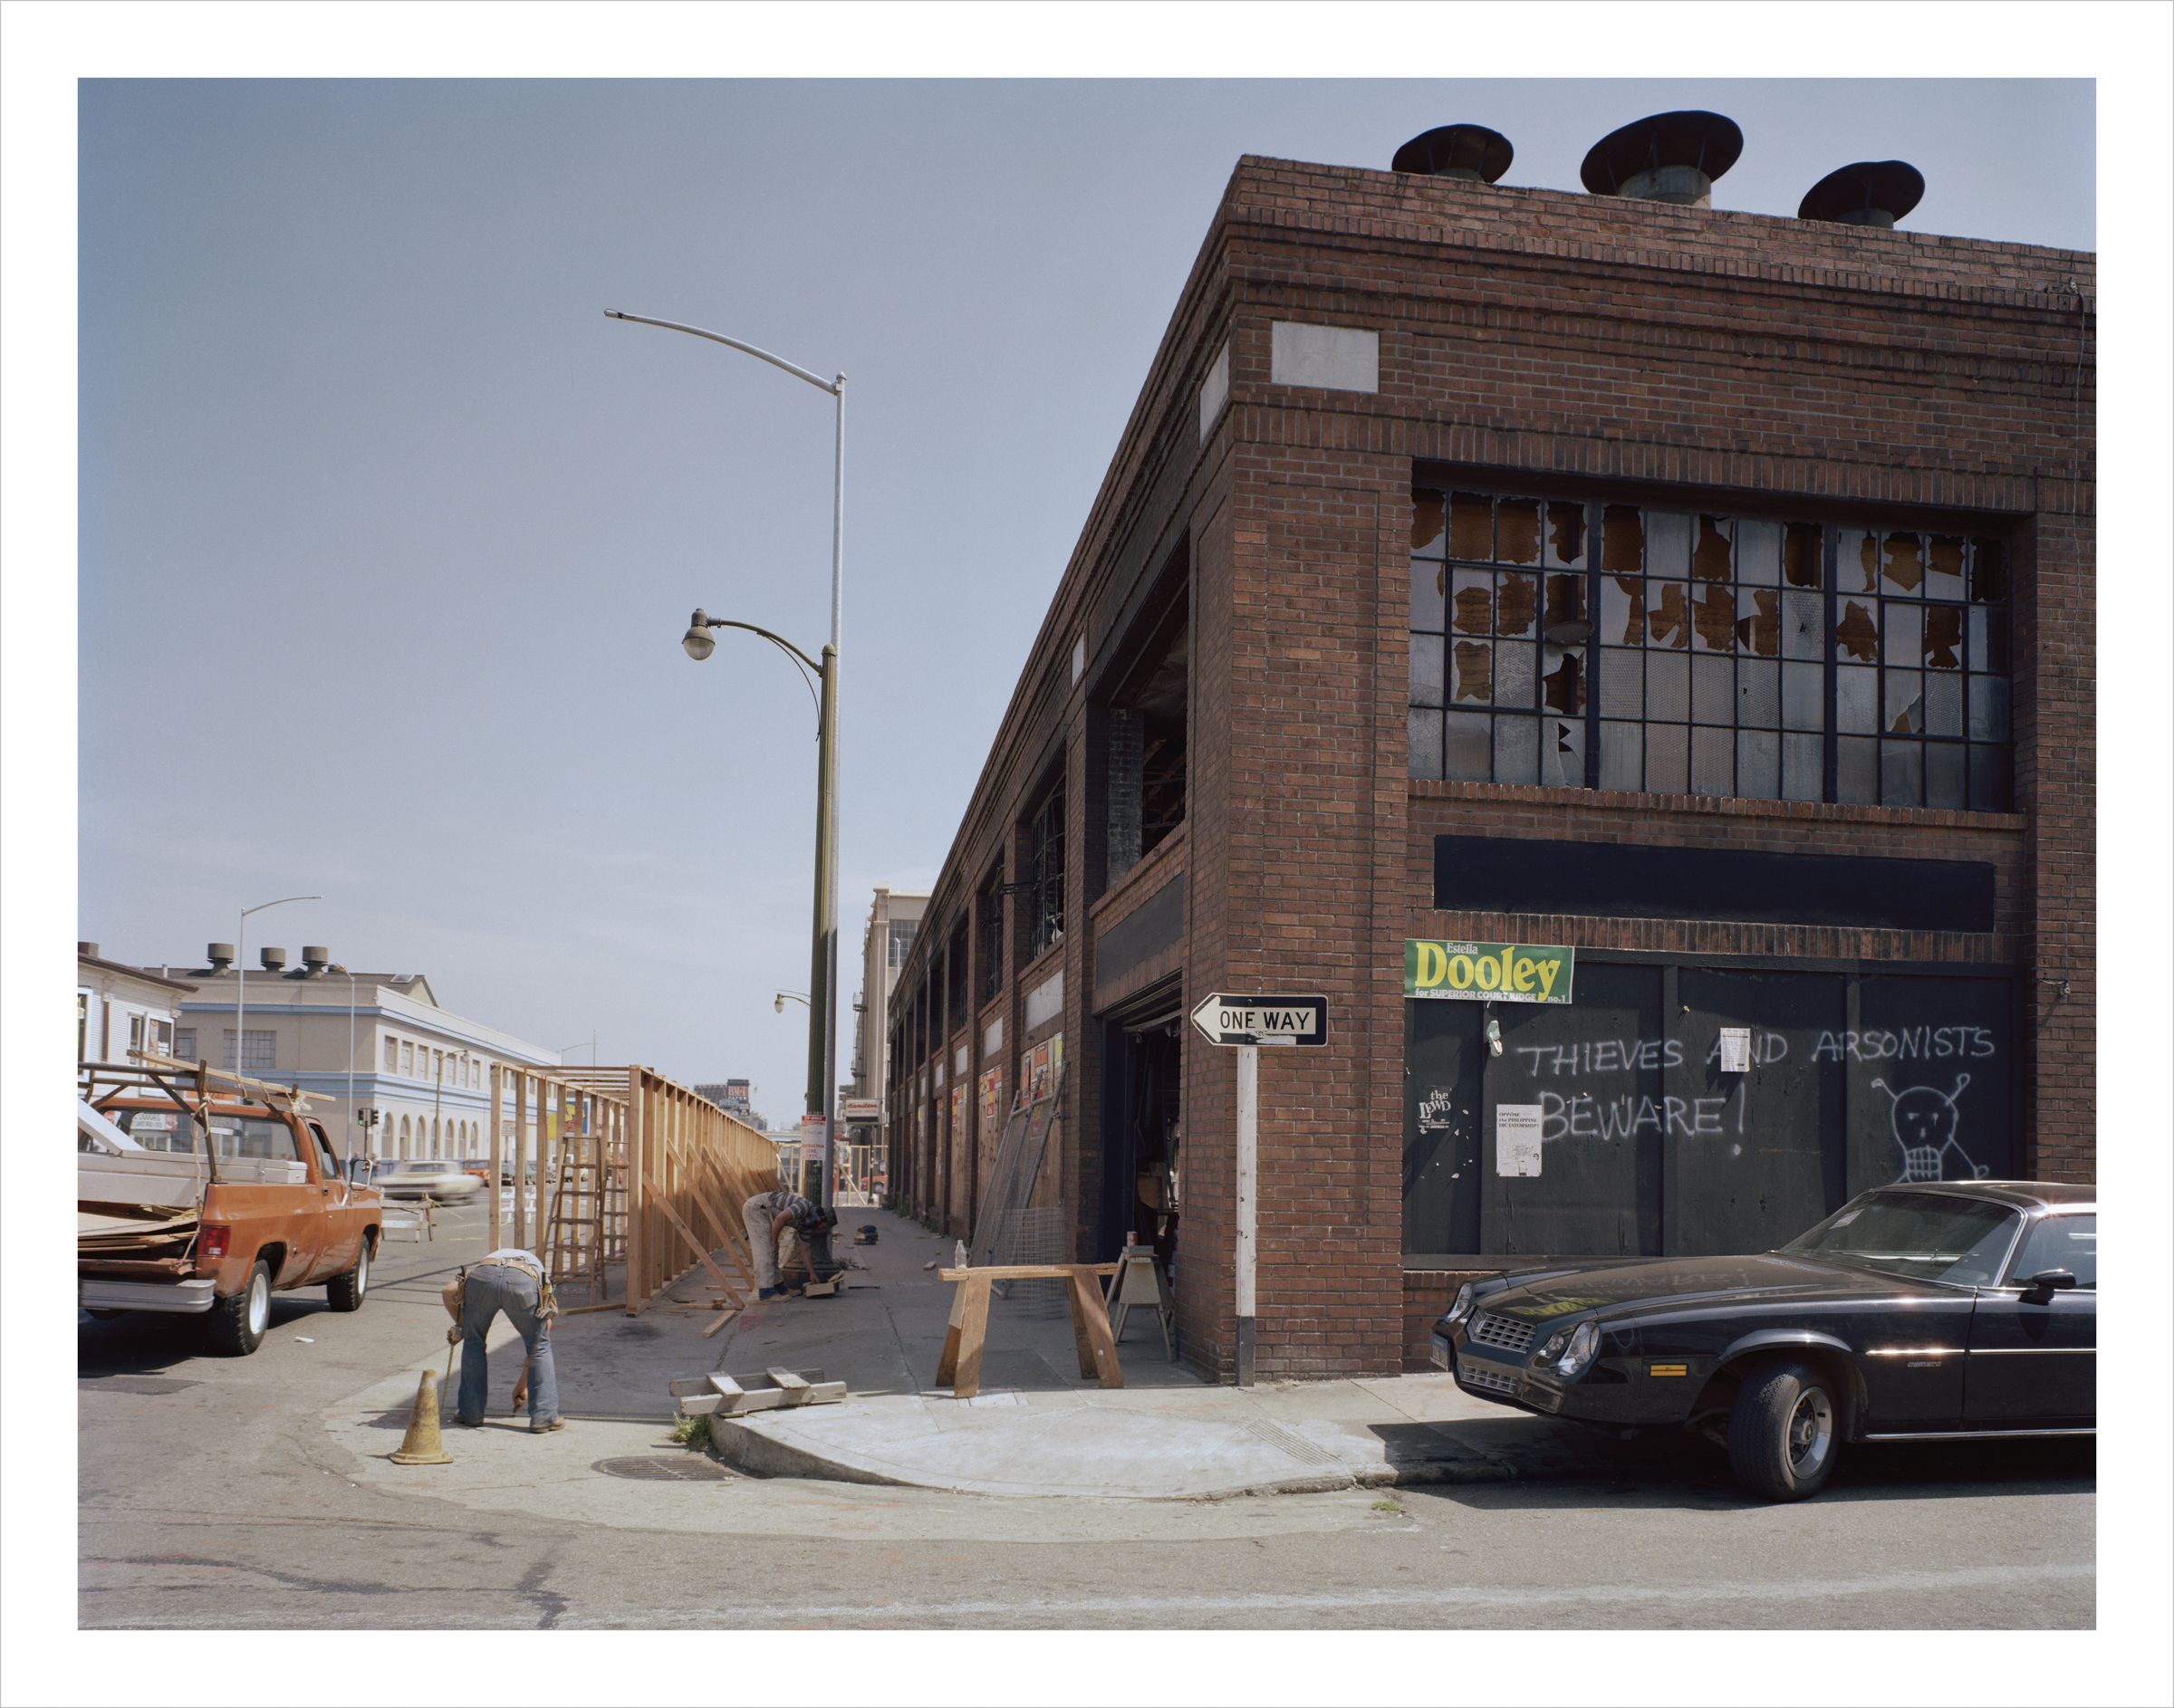 JANET DELANEY Folsom at 8th Street, 1980 Archival Pigment Print, 2016 16 x 20 inches, edition of 5 20 x 24 inches, edition of 2 30 x 40 inches, edition of 2